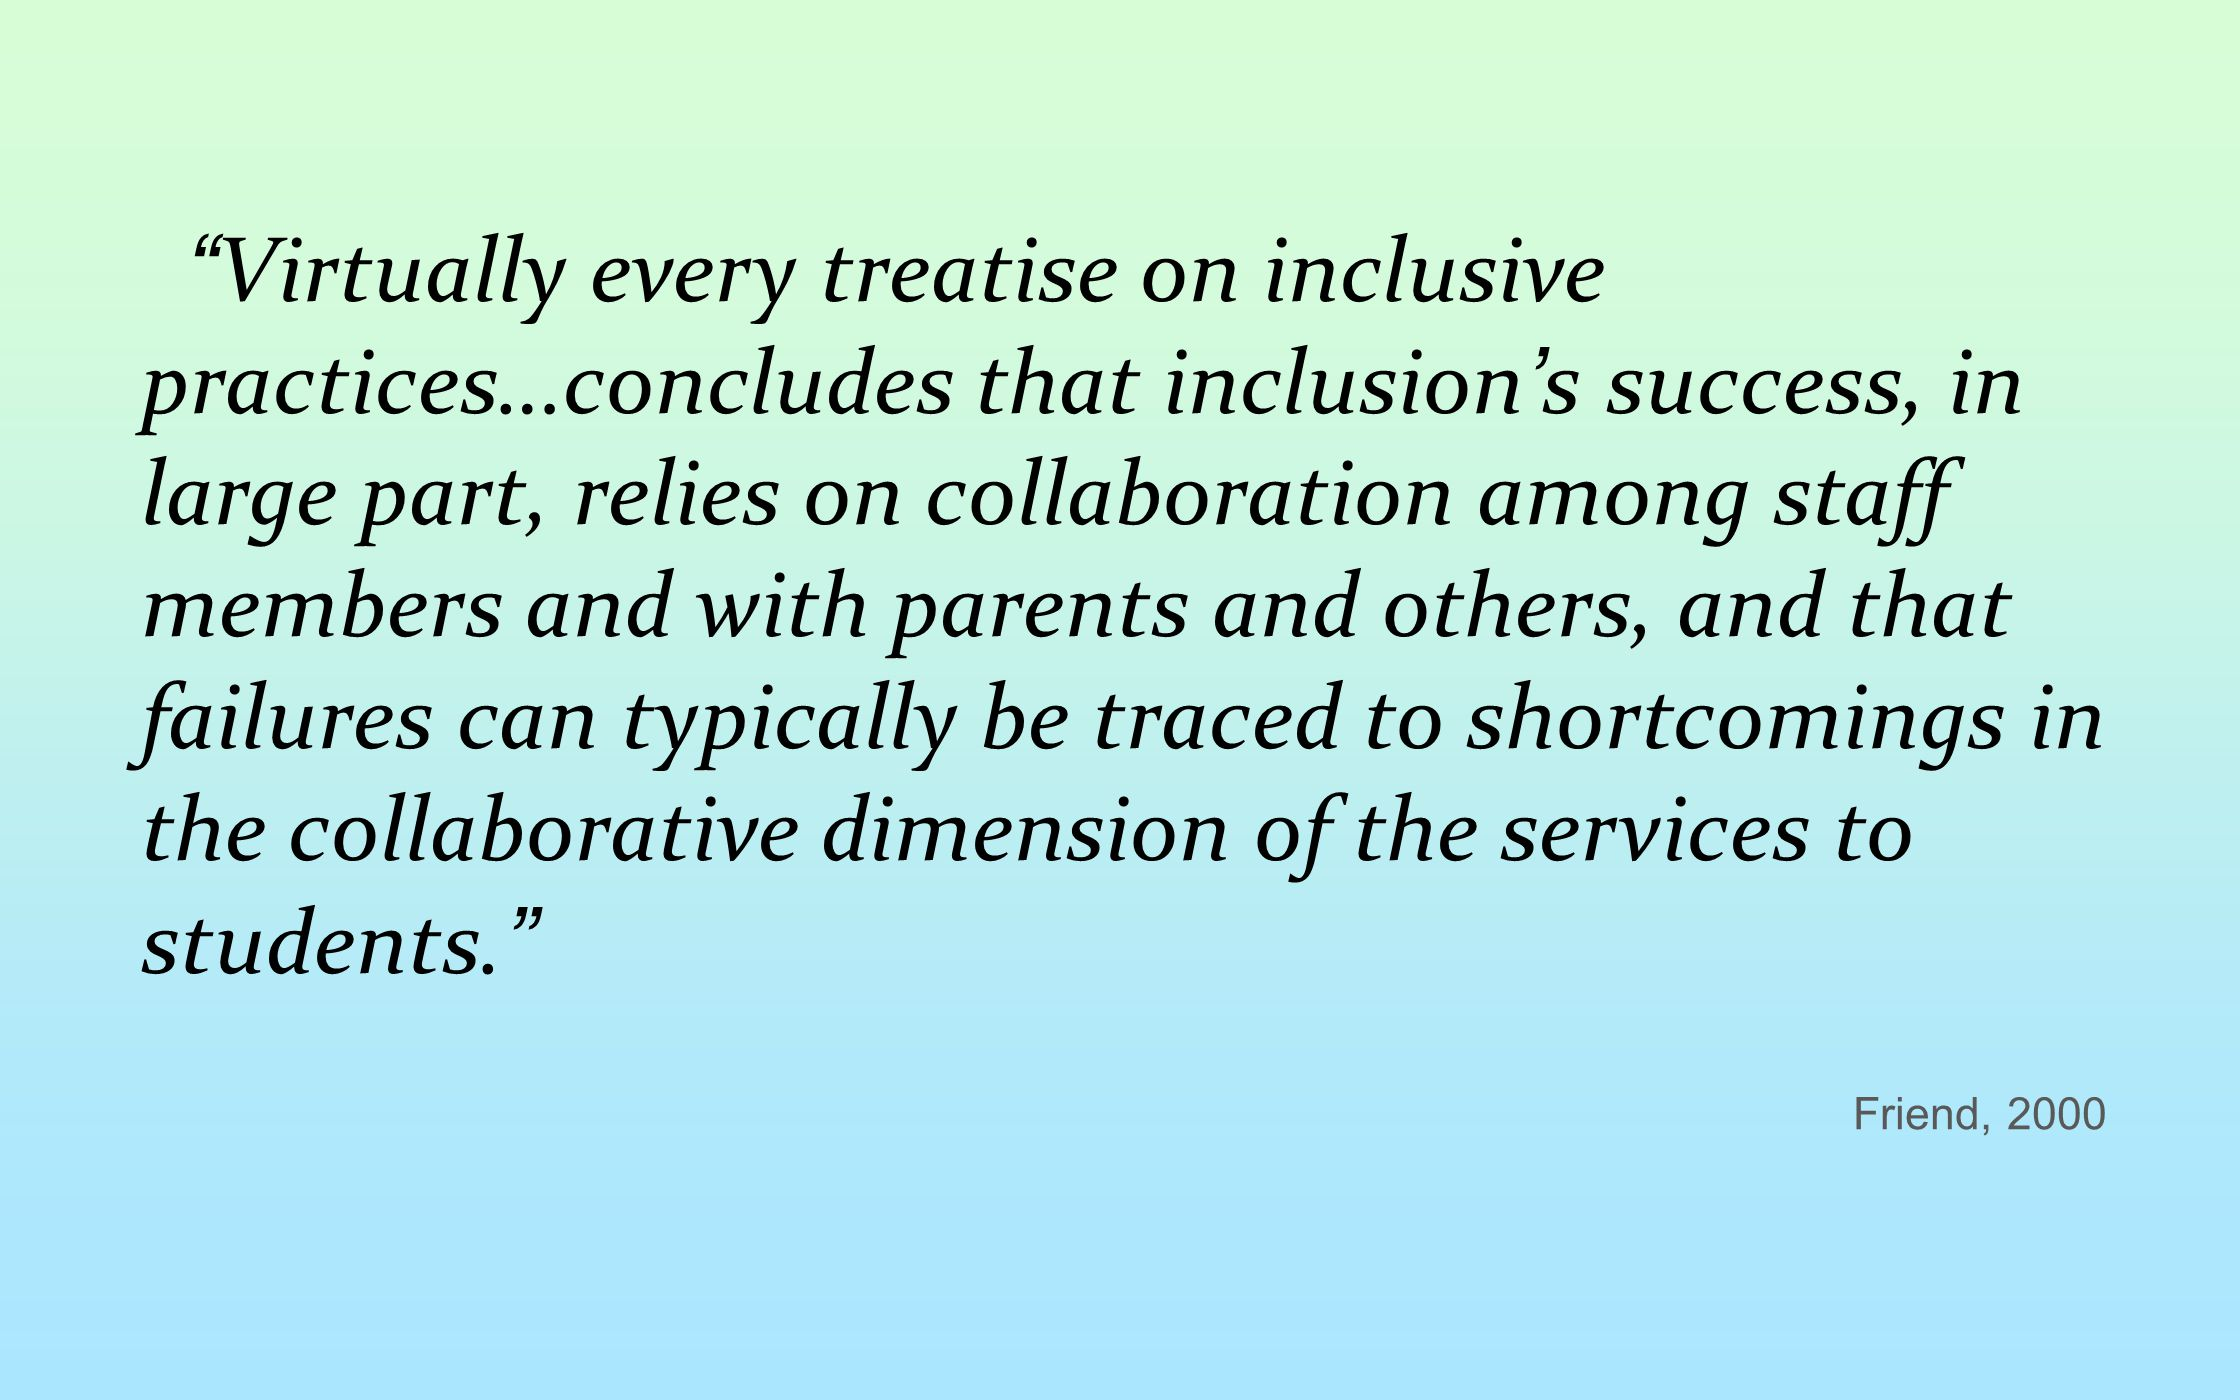 Virtually every treatise on inclusive practices…concludes that inclusion's success, in large part, relies on collaboration among staff members and with parents and others, and that failures can typically be traced to shortcomings in the collaborative dimension of the services to students.